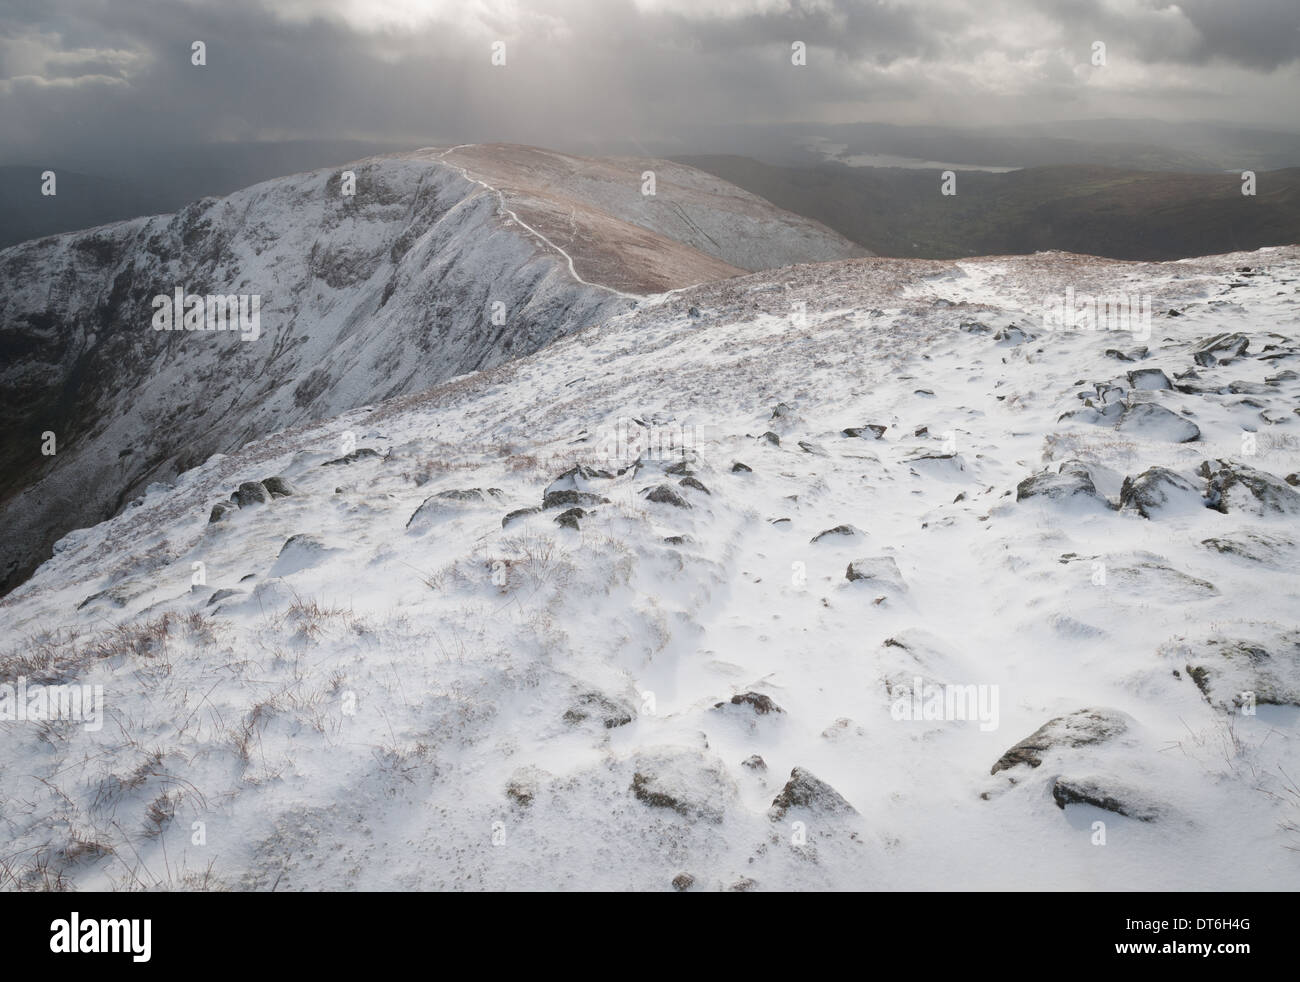 View to Yoke from Ill Bell, Kentmere Horseshoe, English Lake District national park - Stock Image